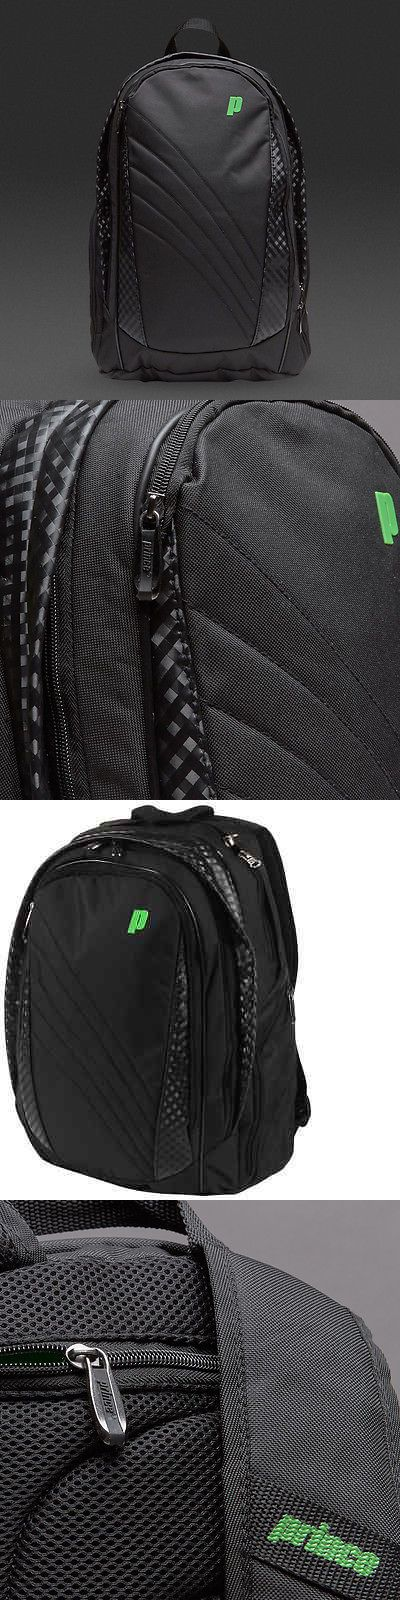 Bags 20869: Prince Textreme Backpack Tennis Racquet Bag Black Charcoal Green Brand New Nwt -> BUY IT NOW ONLY: $64.99 on eBay!